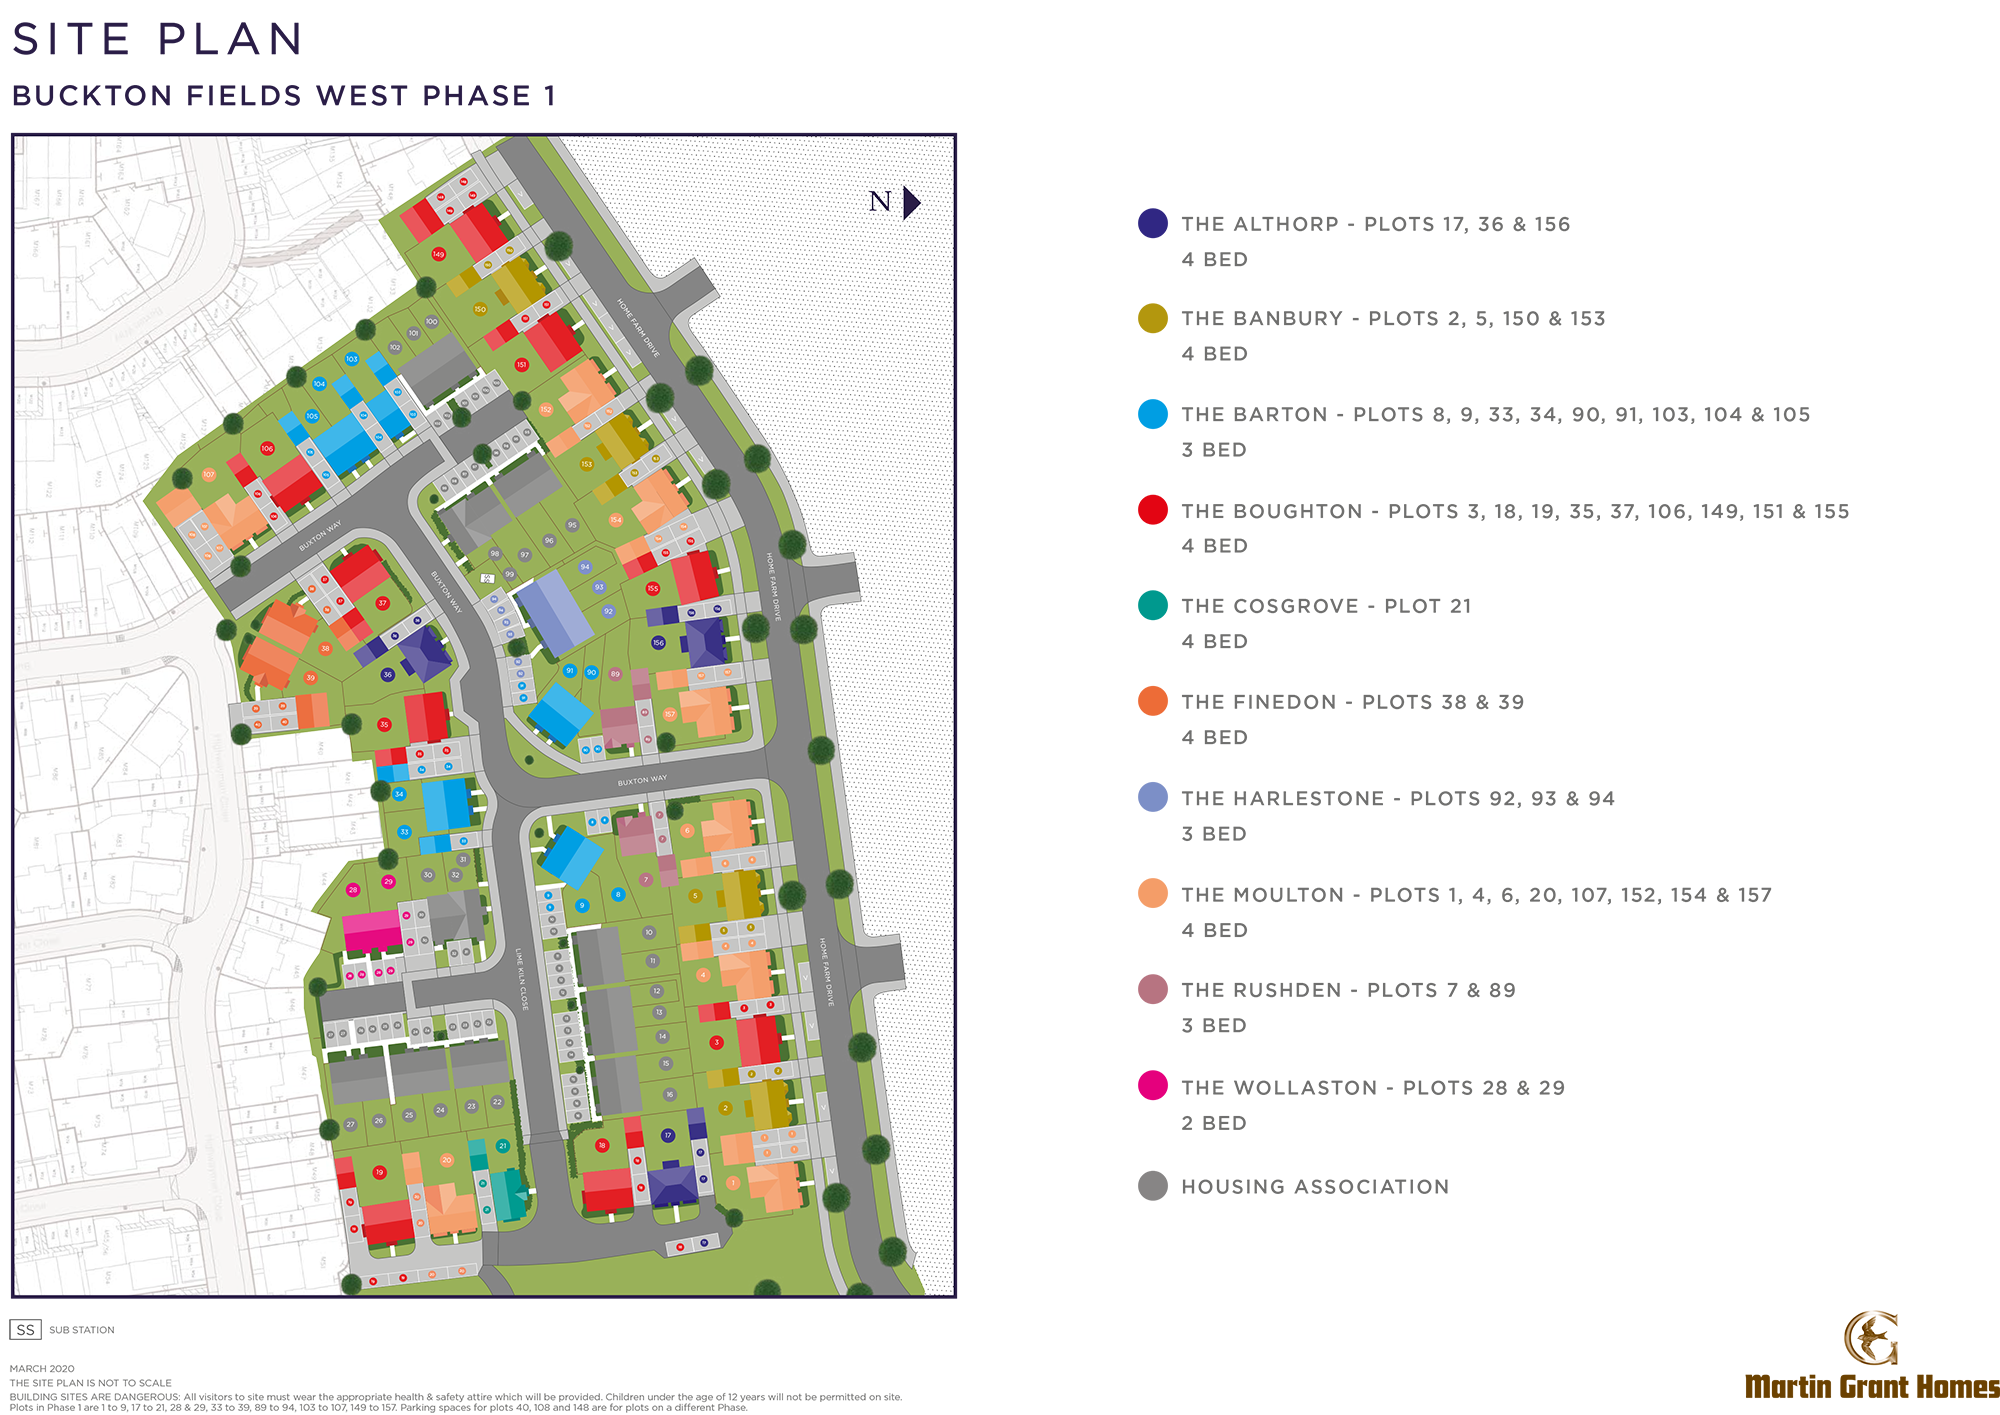 Plot 29 – The Wollaston Siteplan